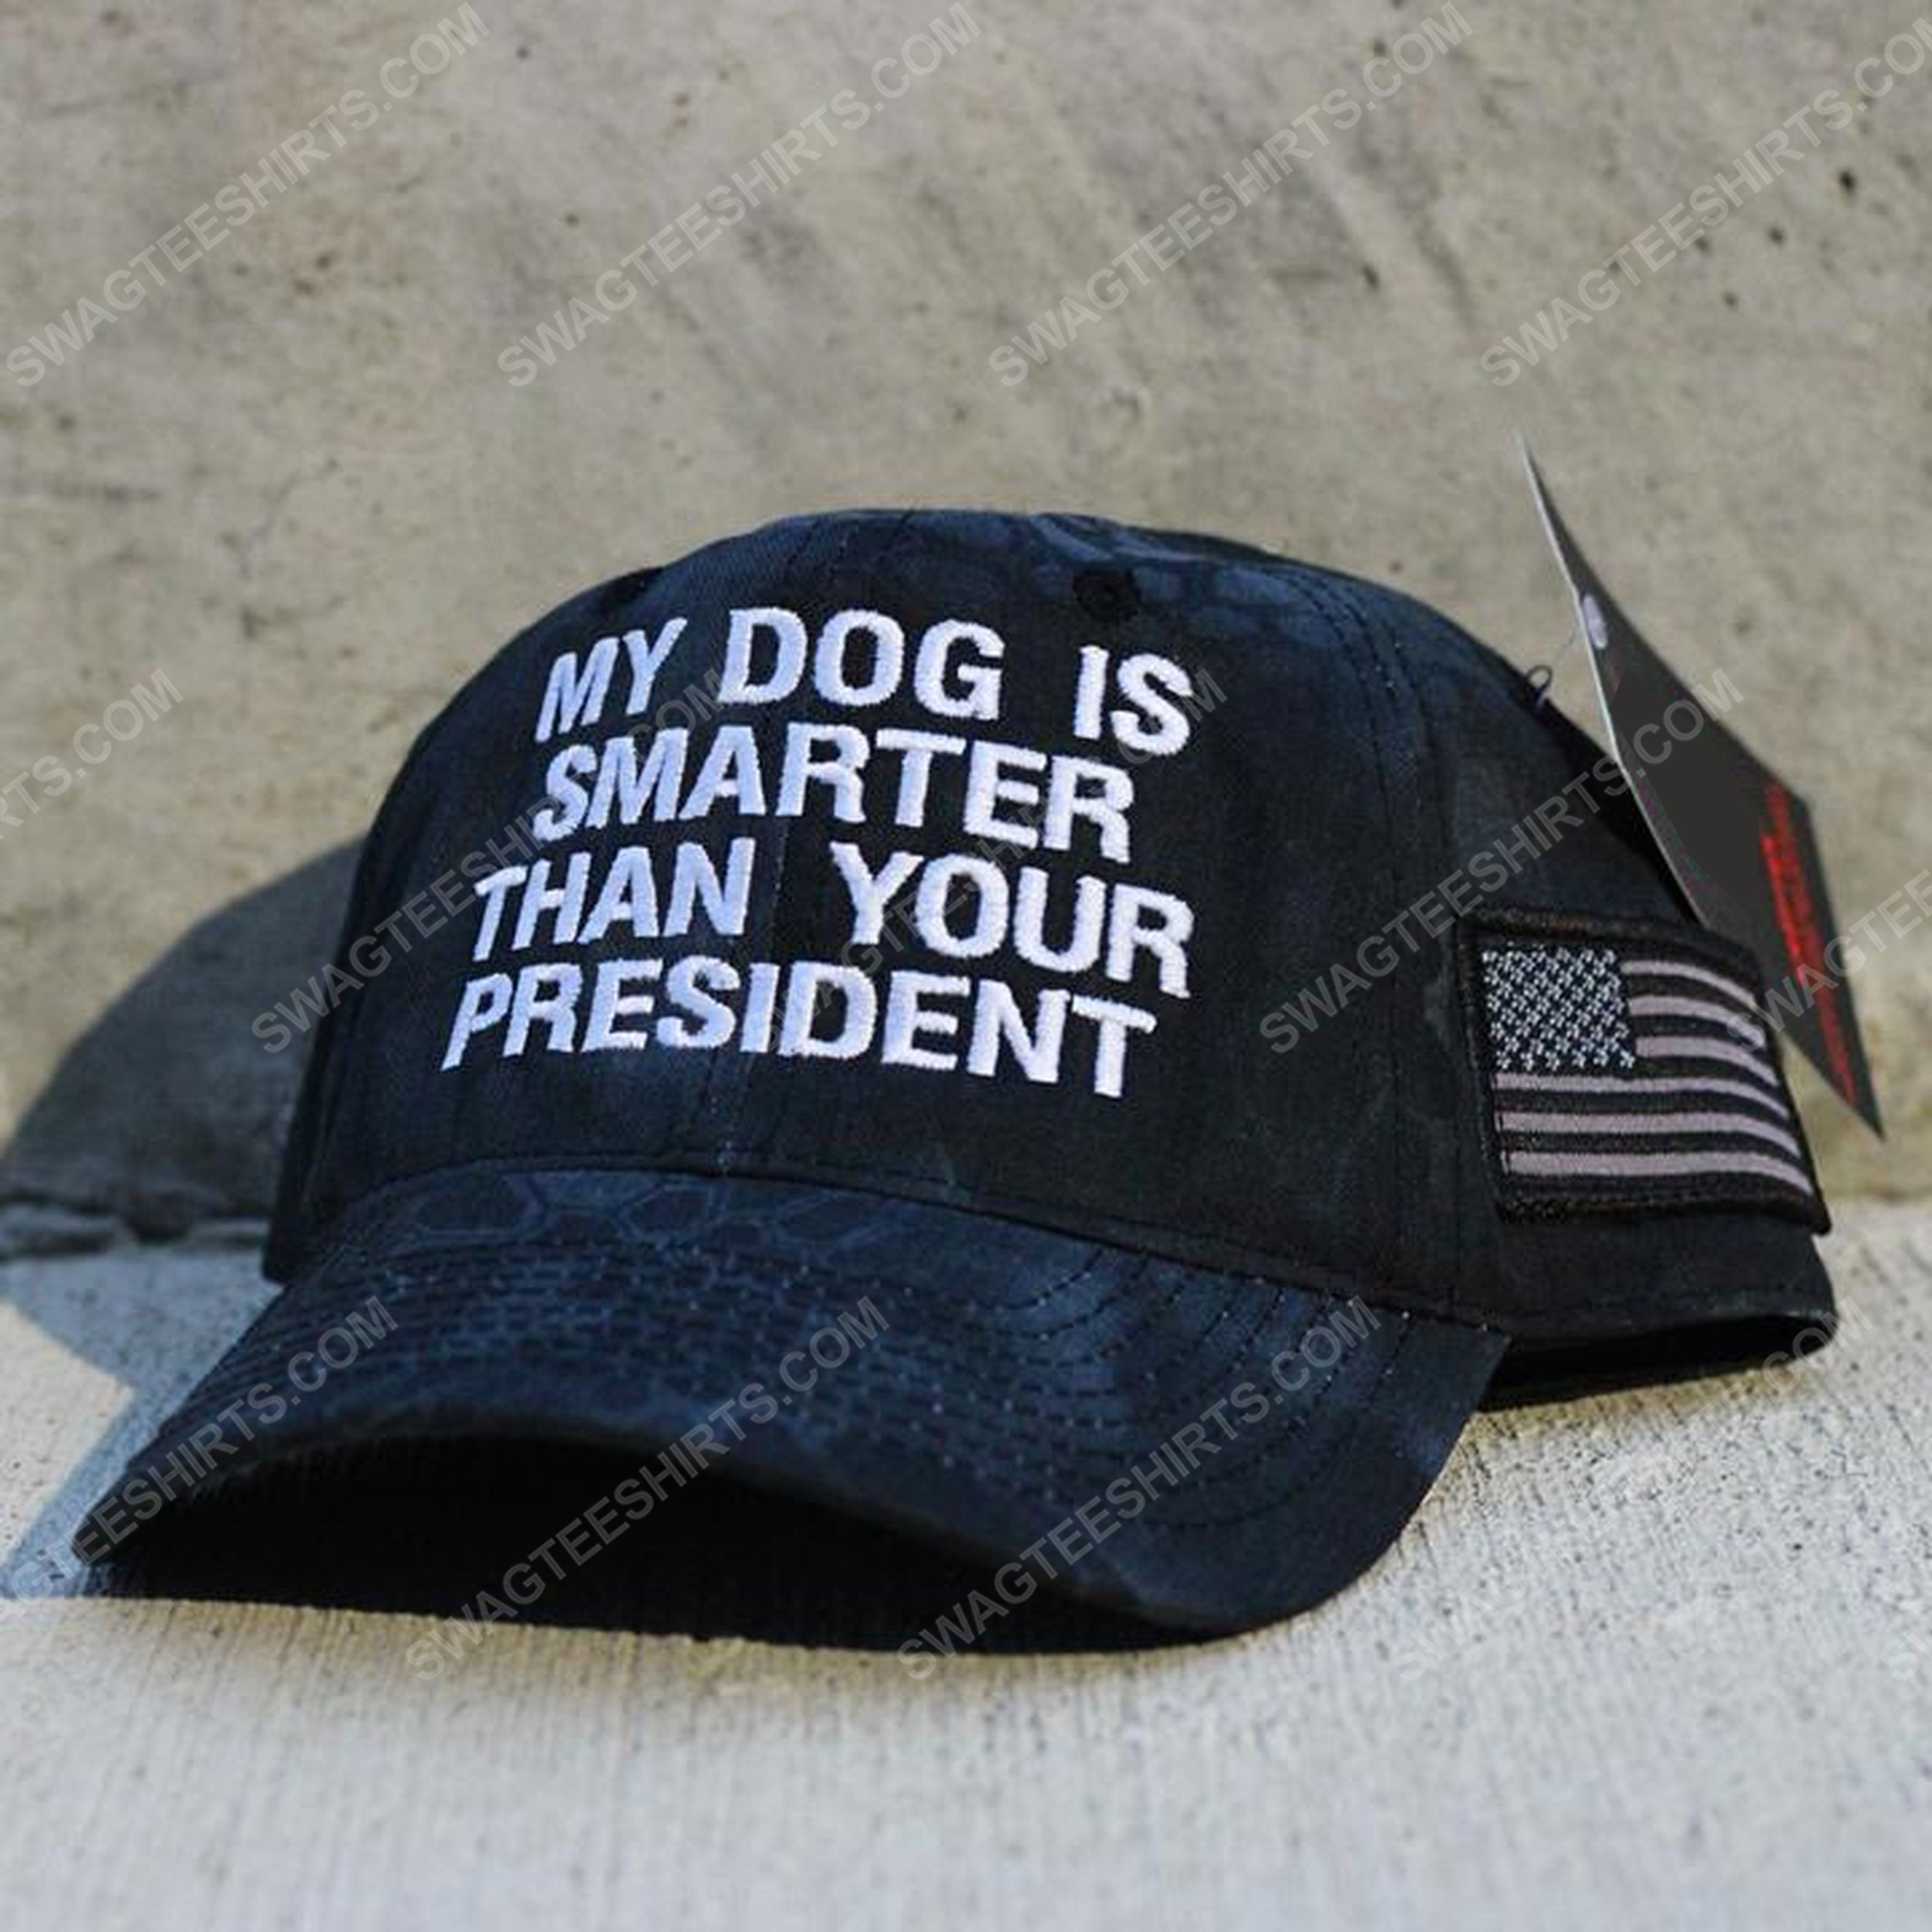 My dog is smarter than your president american flag full print classic hat 1